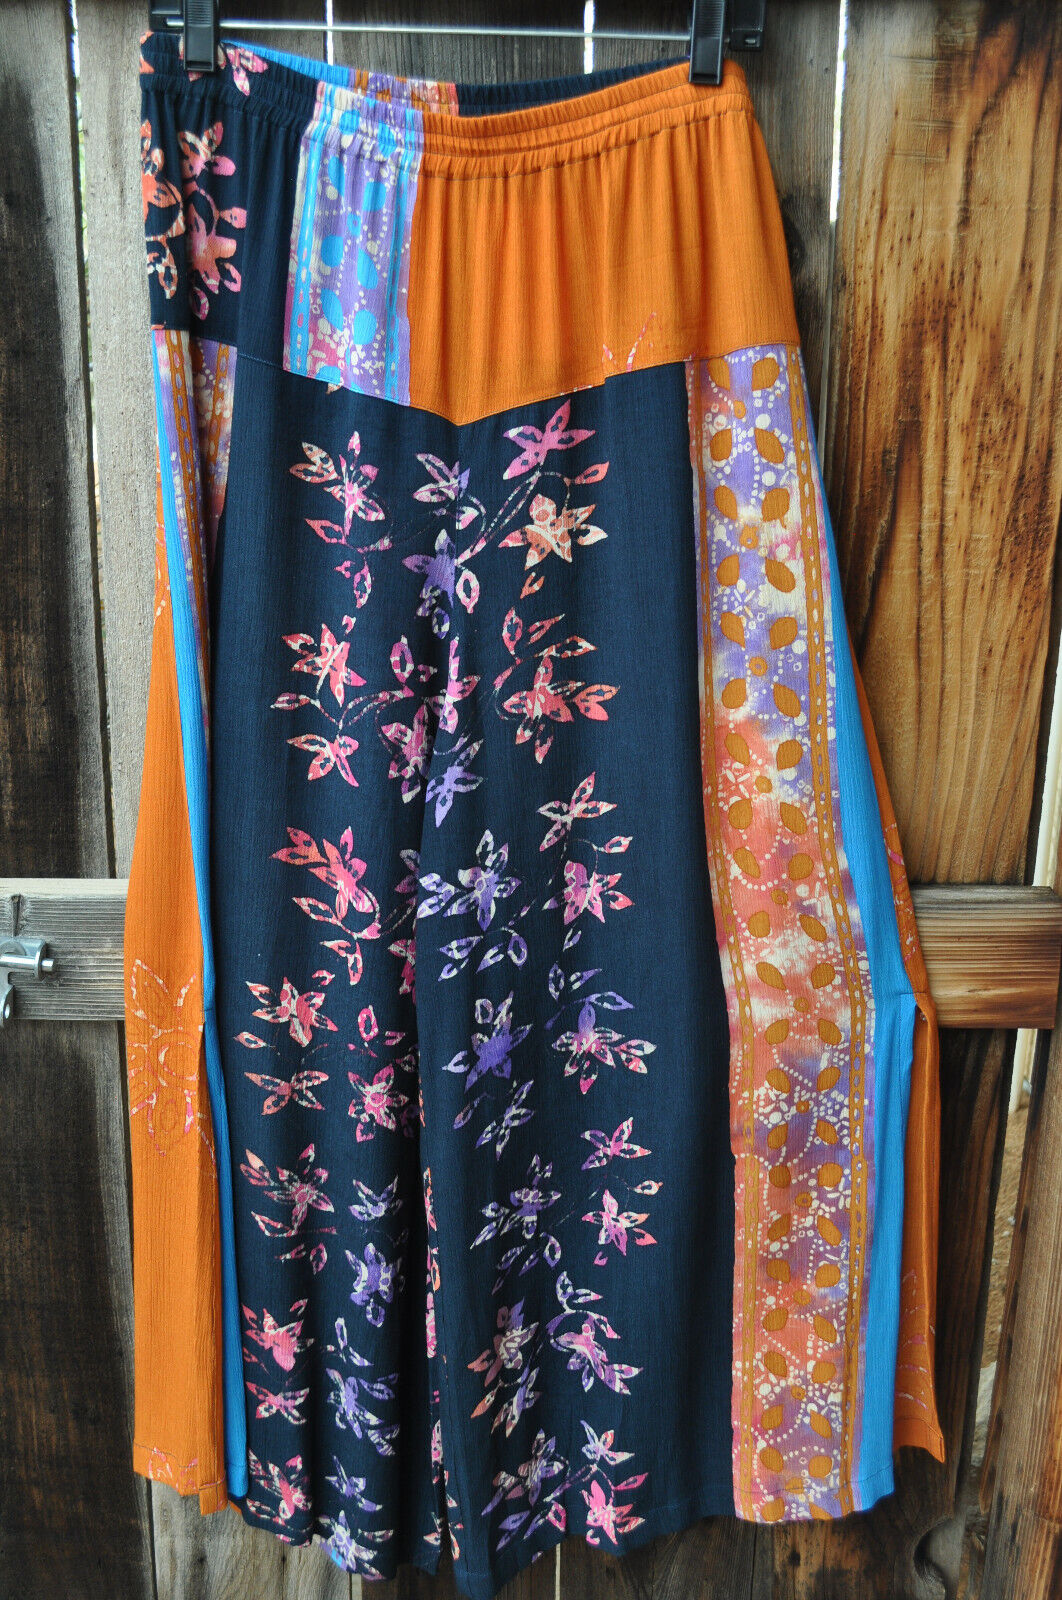 ART TO WEAR NEW STYLE 96 PANT IN ALL NEW FIESTA BY MISSION CANYON,ONE SIZE